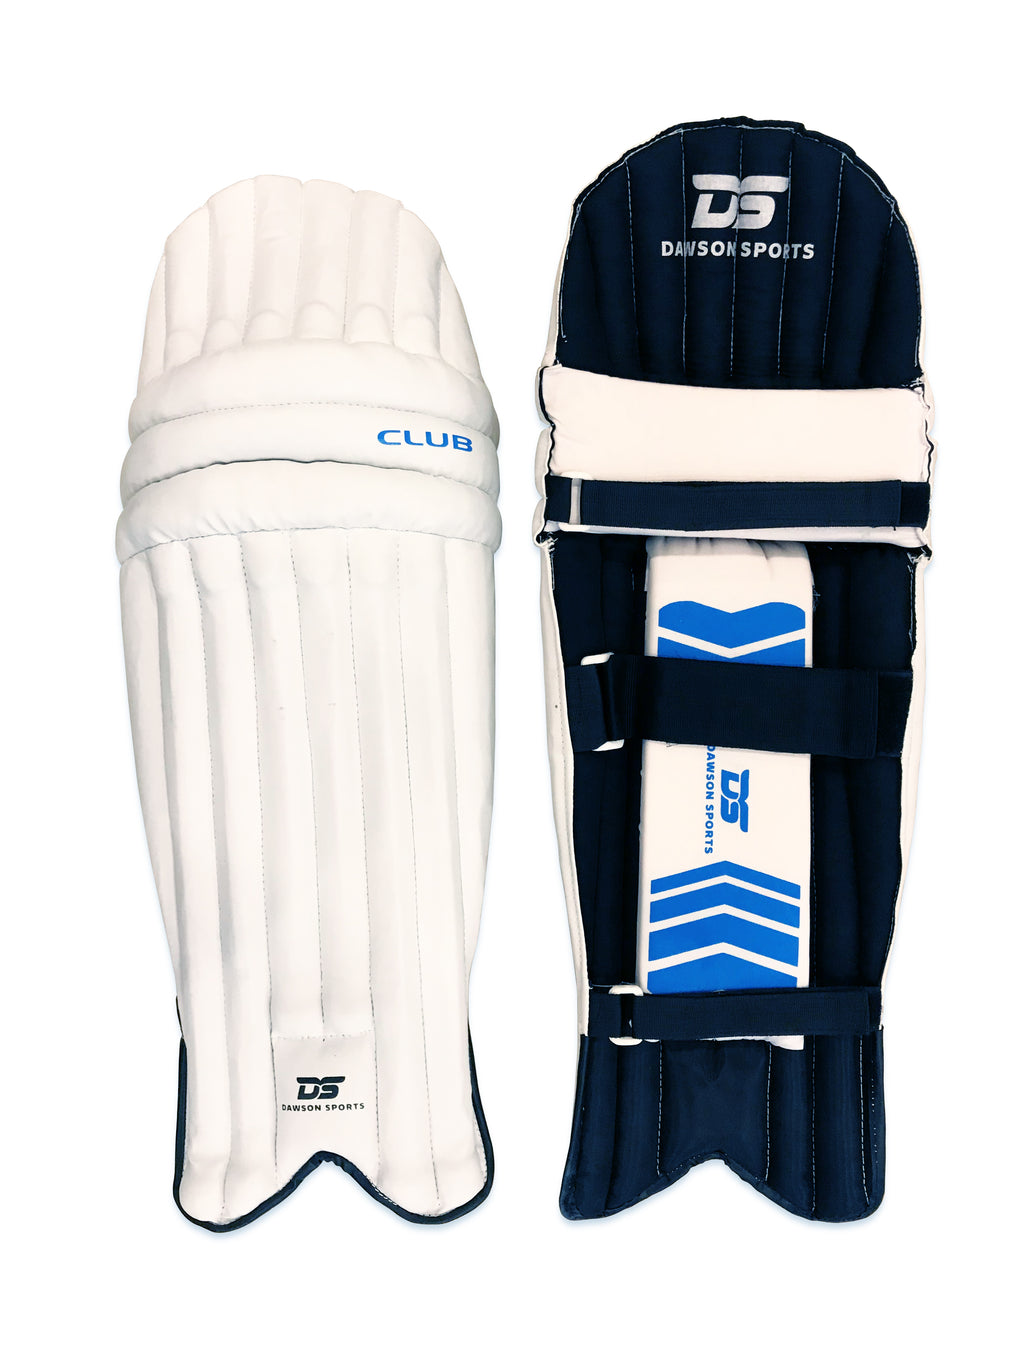 Cricket Batting Pads - Dawson Sports